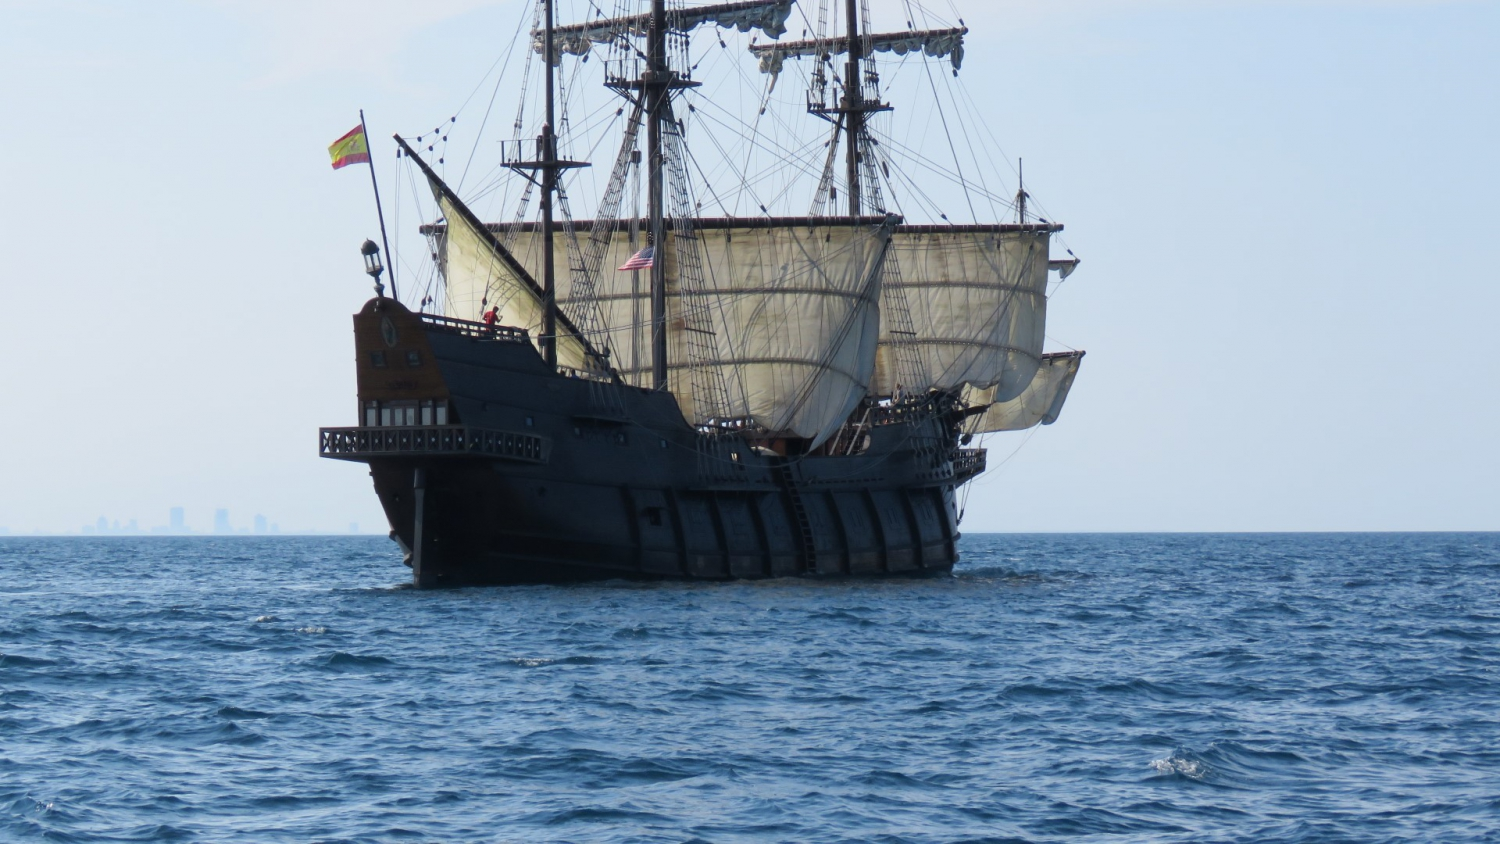 Spain's floating maritime museum, the Andalucia galleon in Alicante